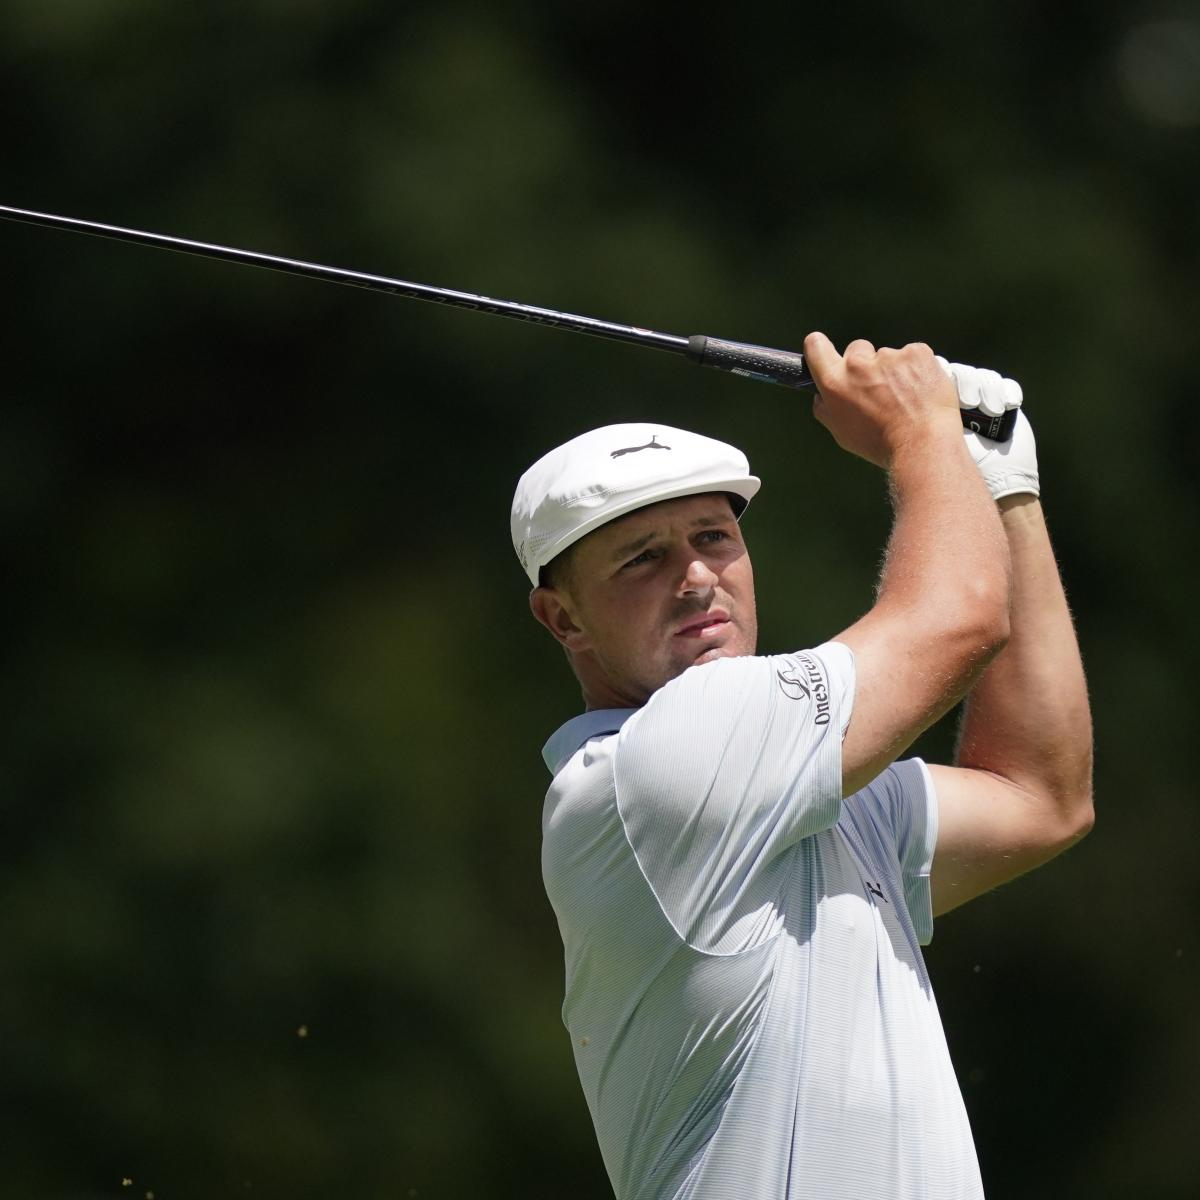 Capital One's The Match: Odds for Mickelson, Brady vs. DeChambeau, Rodgers